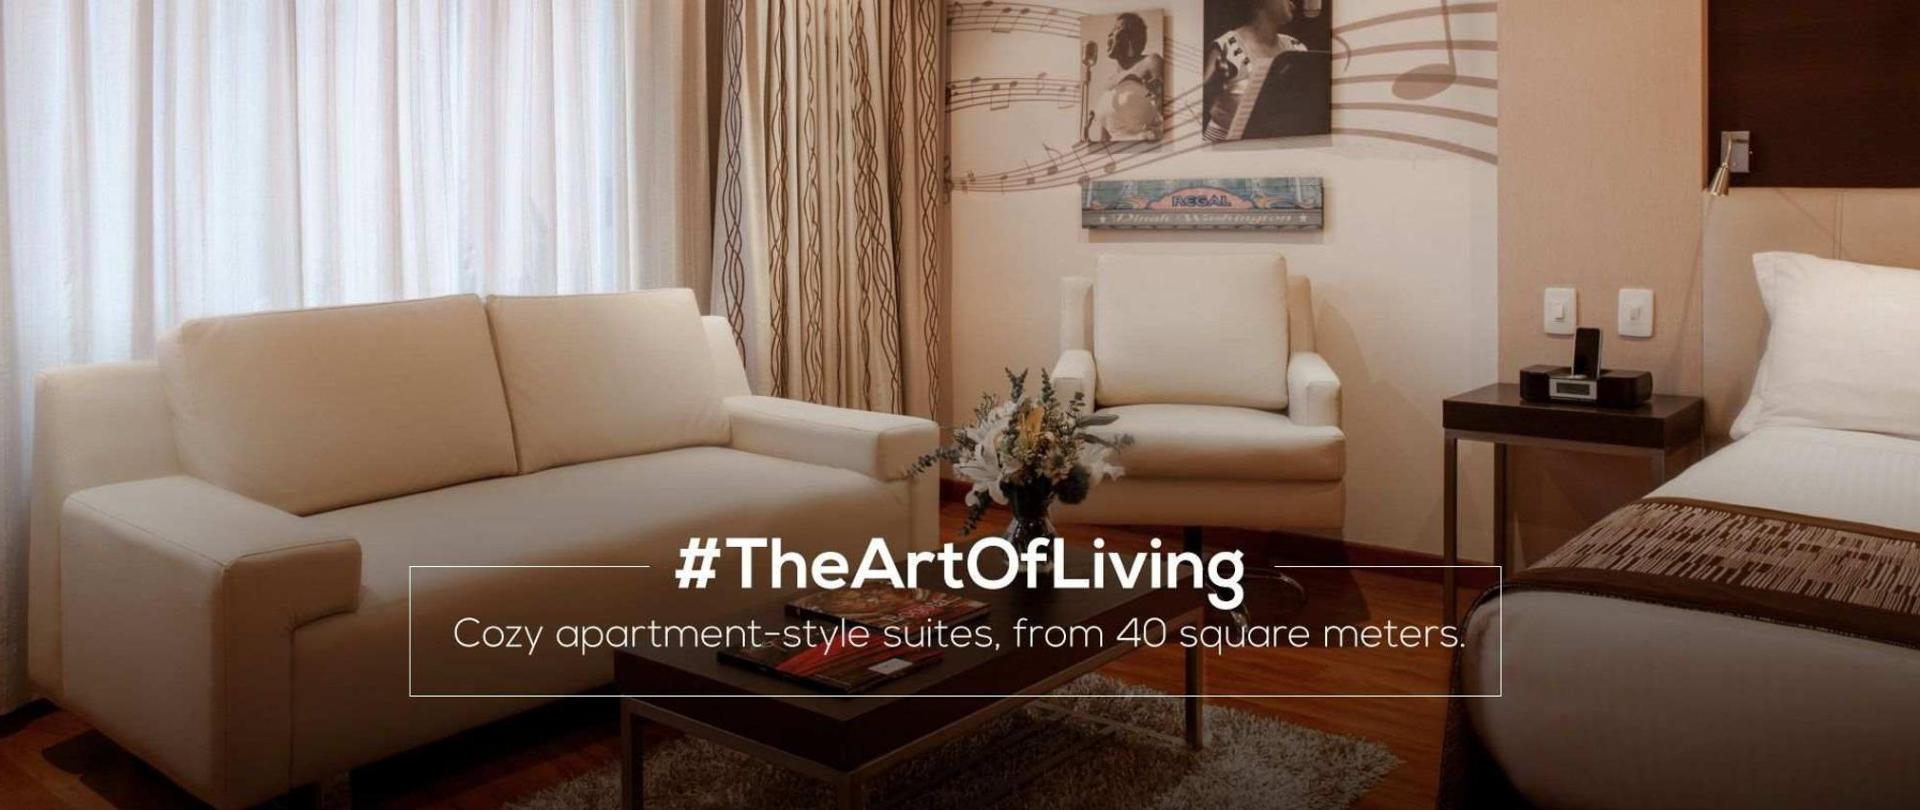 www-jazzapartments-com-the-art-de-living.jpg